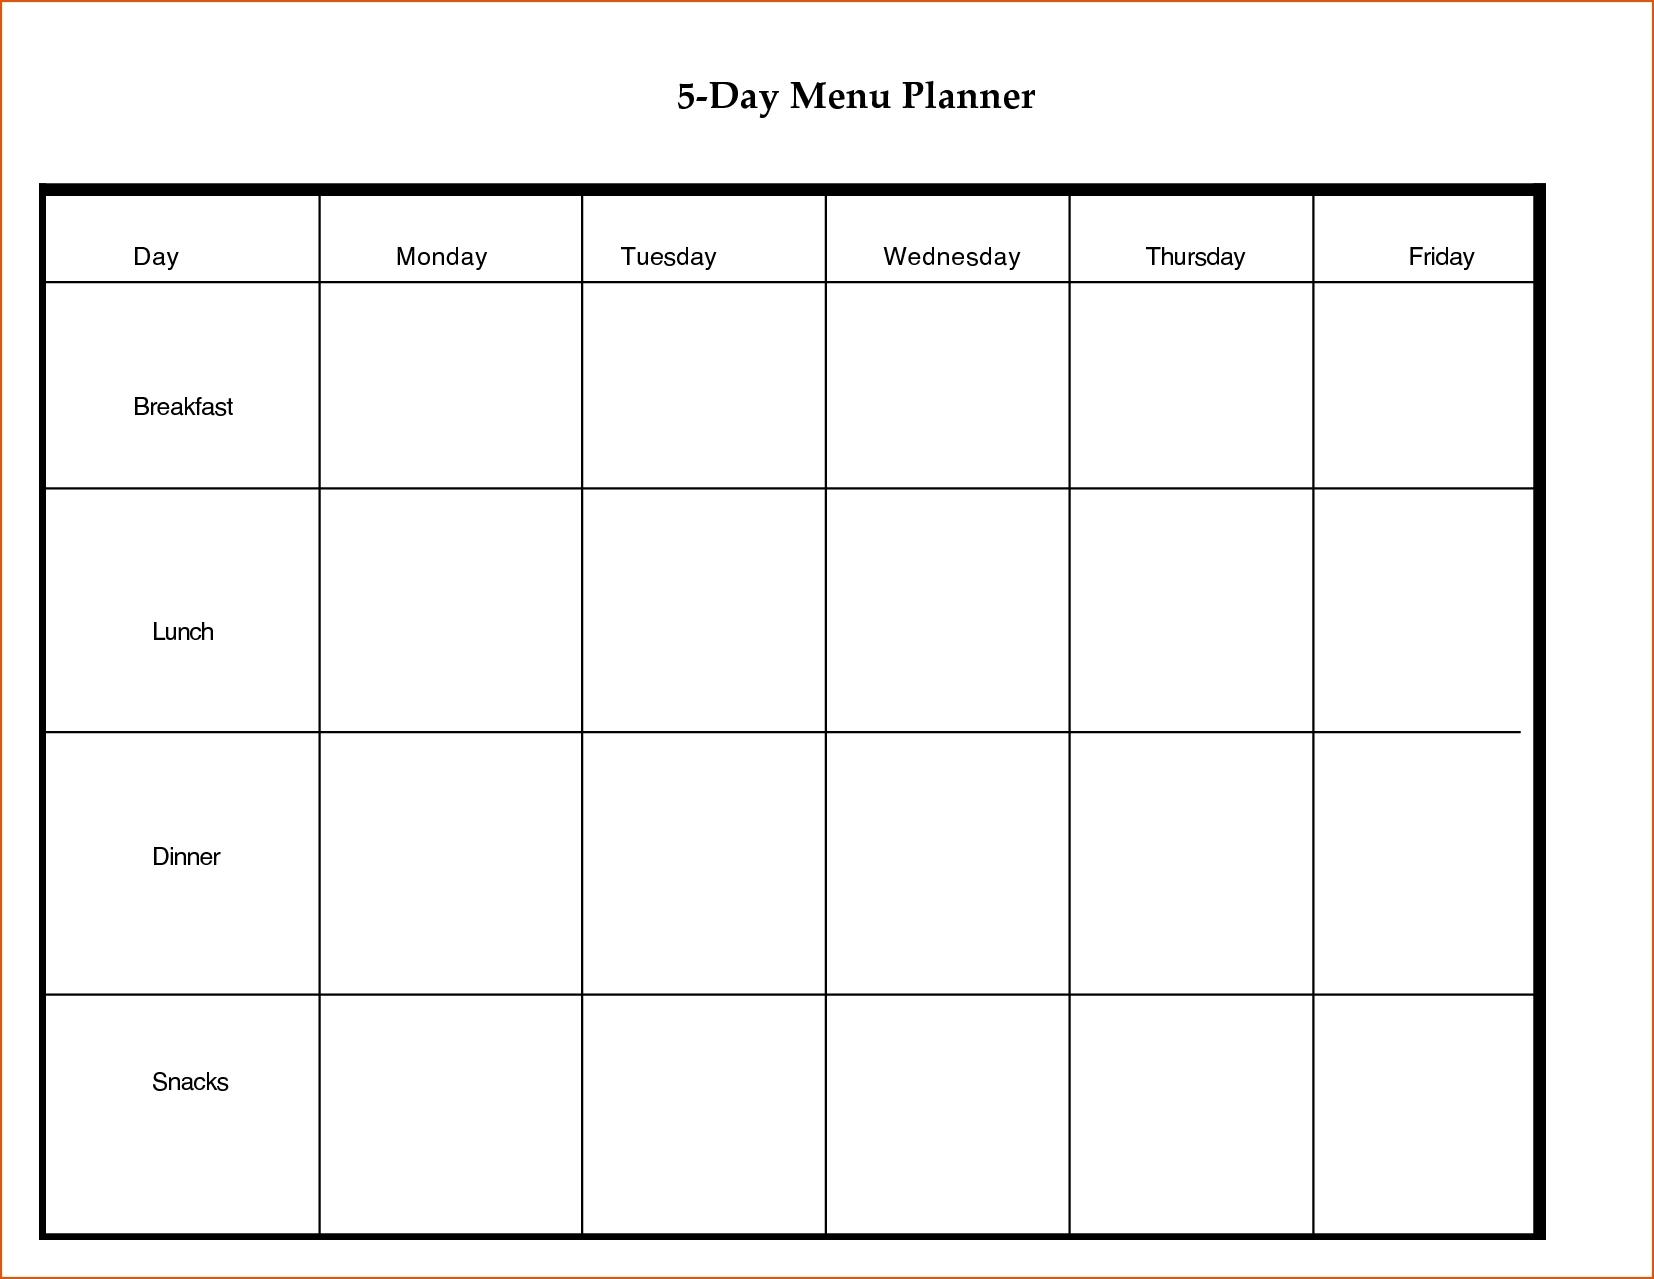 5 Day Week Blank Calendar With Time Slots Printable | Template for Blank Calendar 5 Day Week With Times